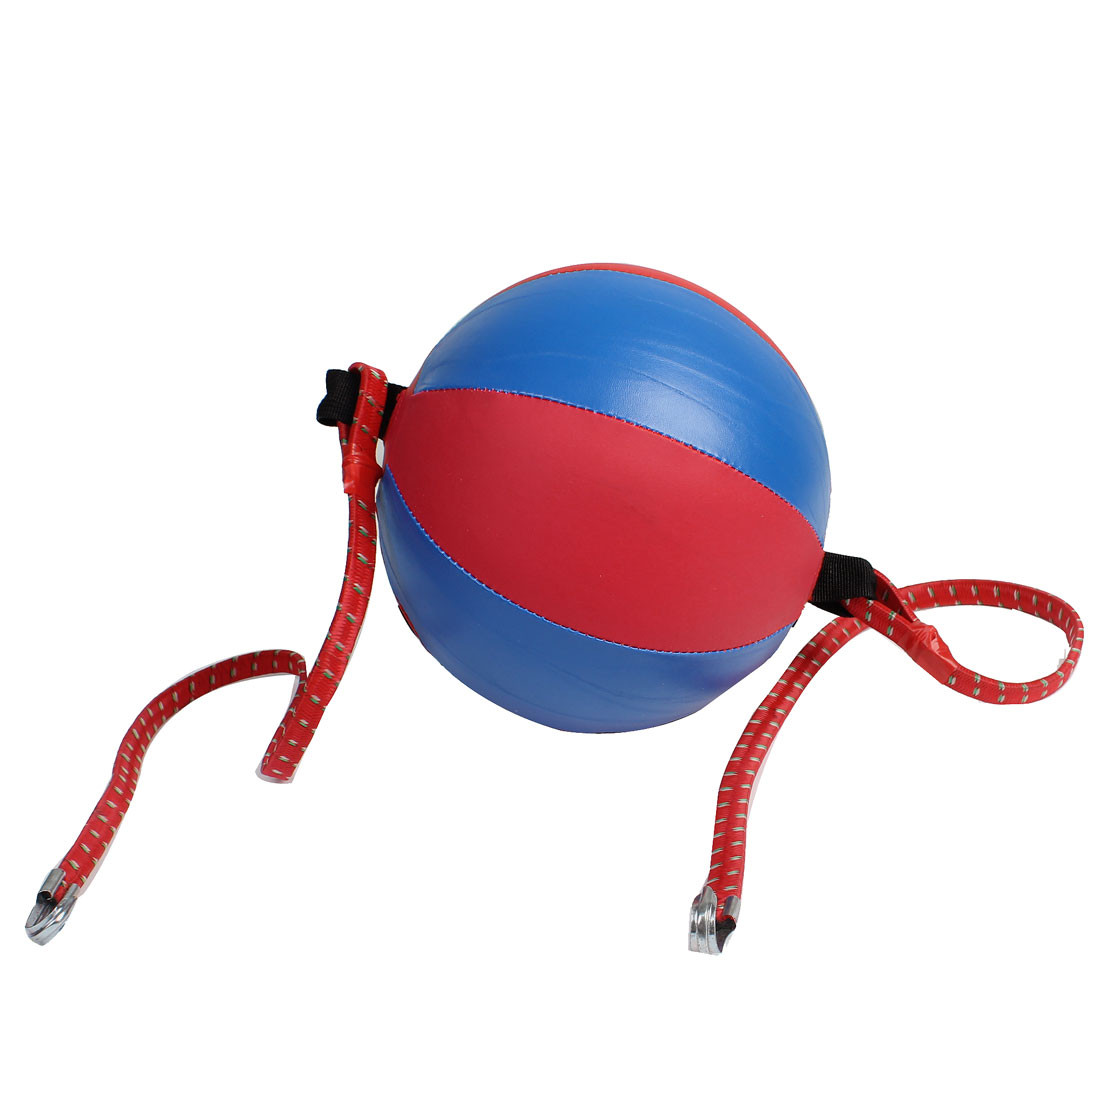 22cm Dia Red Blue Inflatable Faux Leather Punching Bag Speed Ball